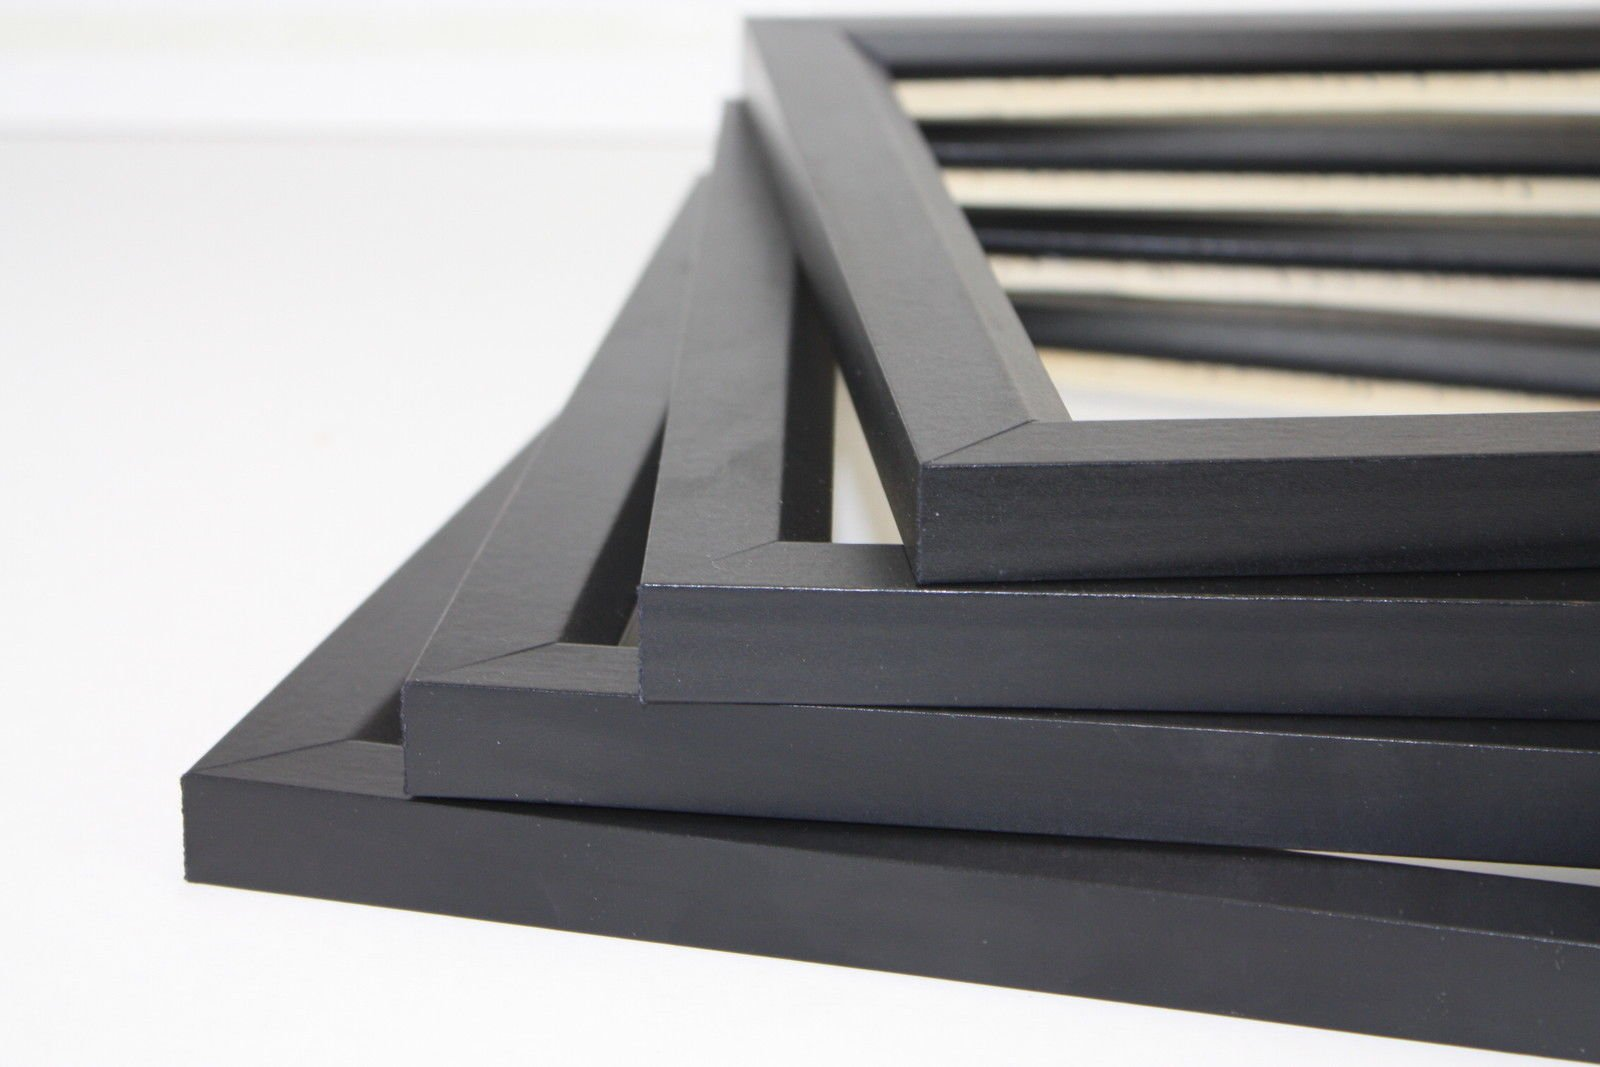 12x12 Black 1.25 Inch Solid Wood Wrapped Finish Picture Poster Photo Frame - Set of 4